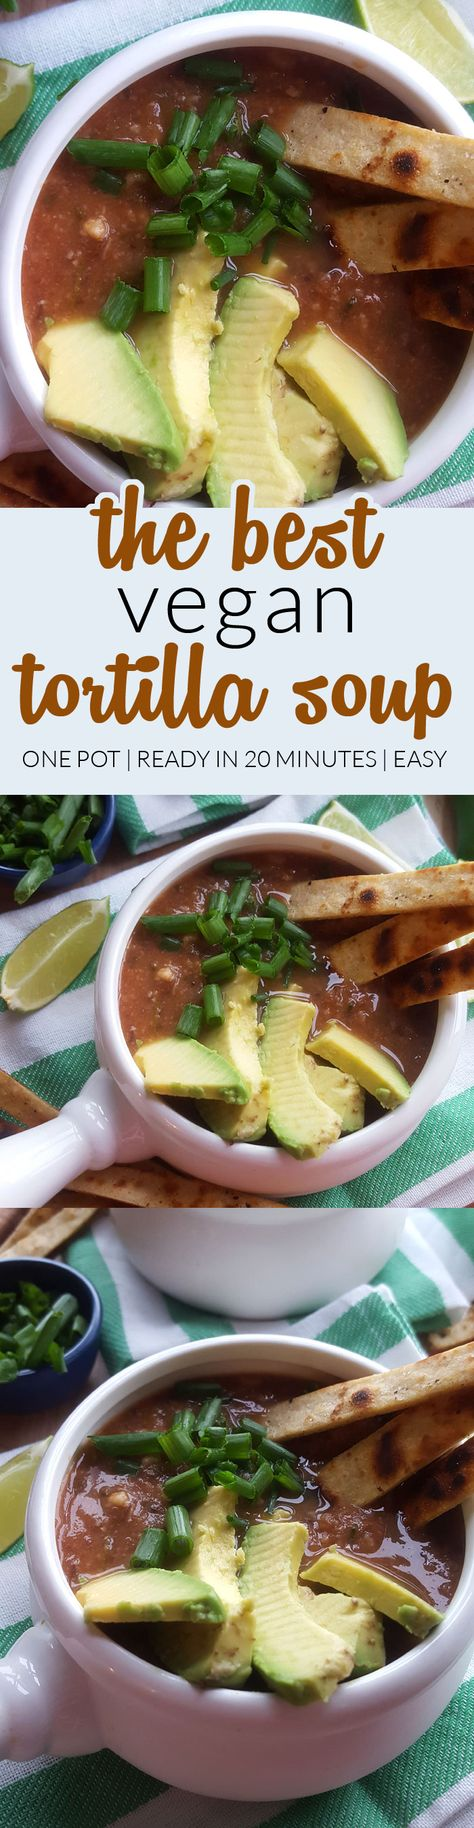 The Best Vegan Tortilla Soup - Really easy to make with minimal ingredients, ready in about 20 minutes and packed with flavour!